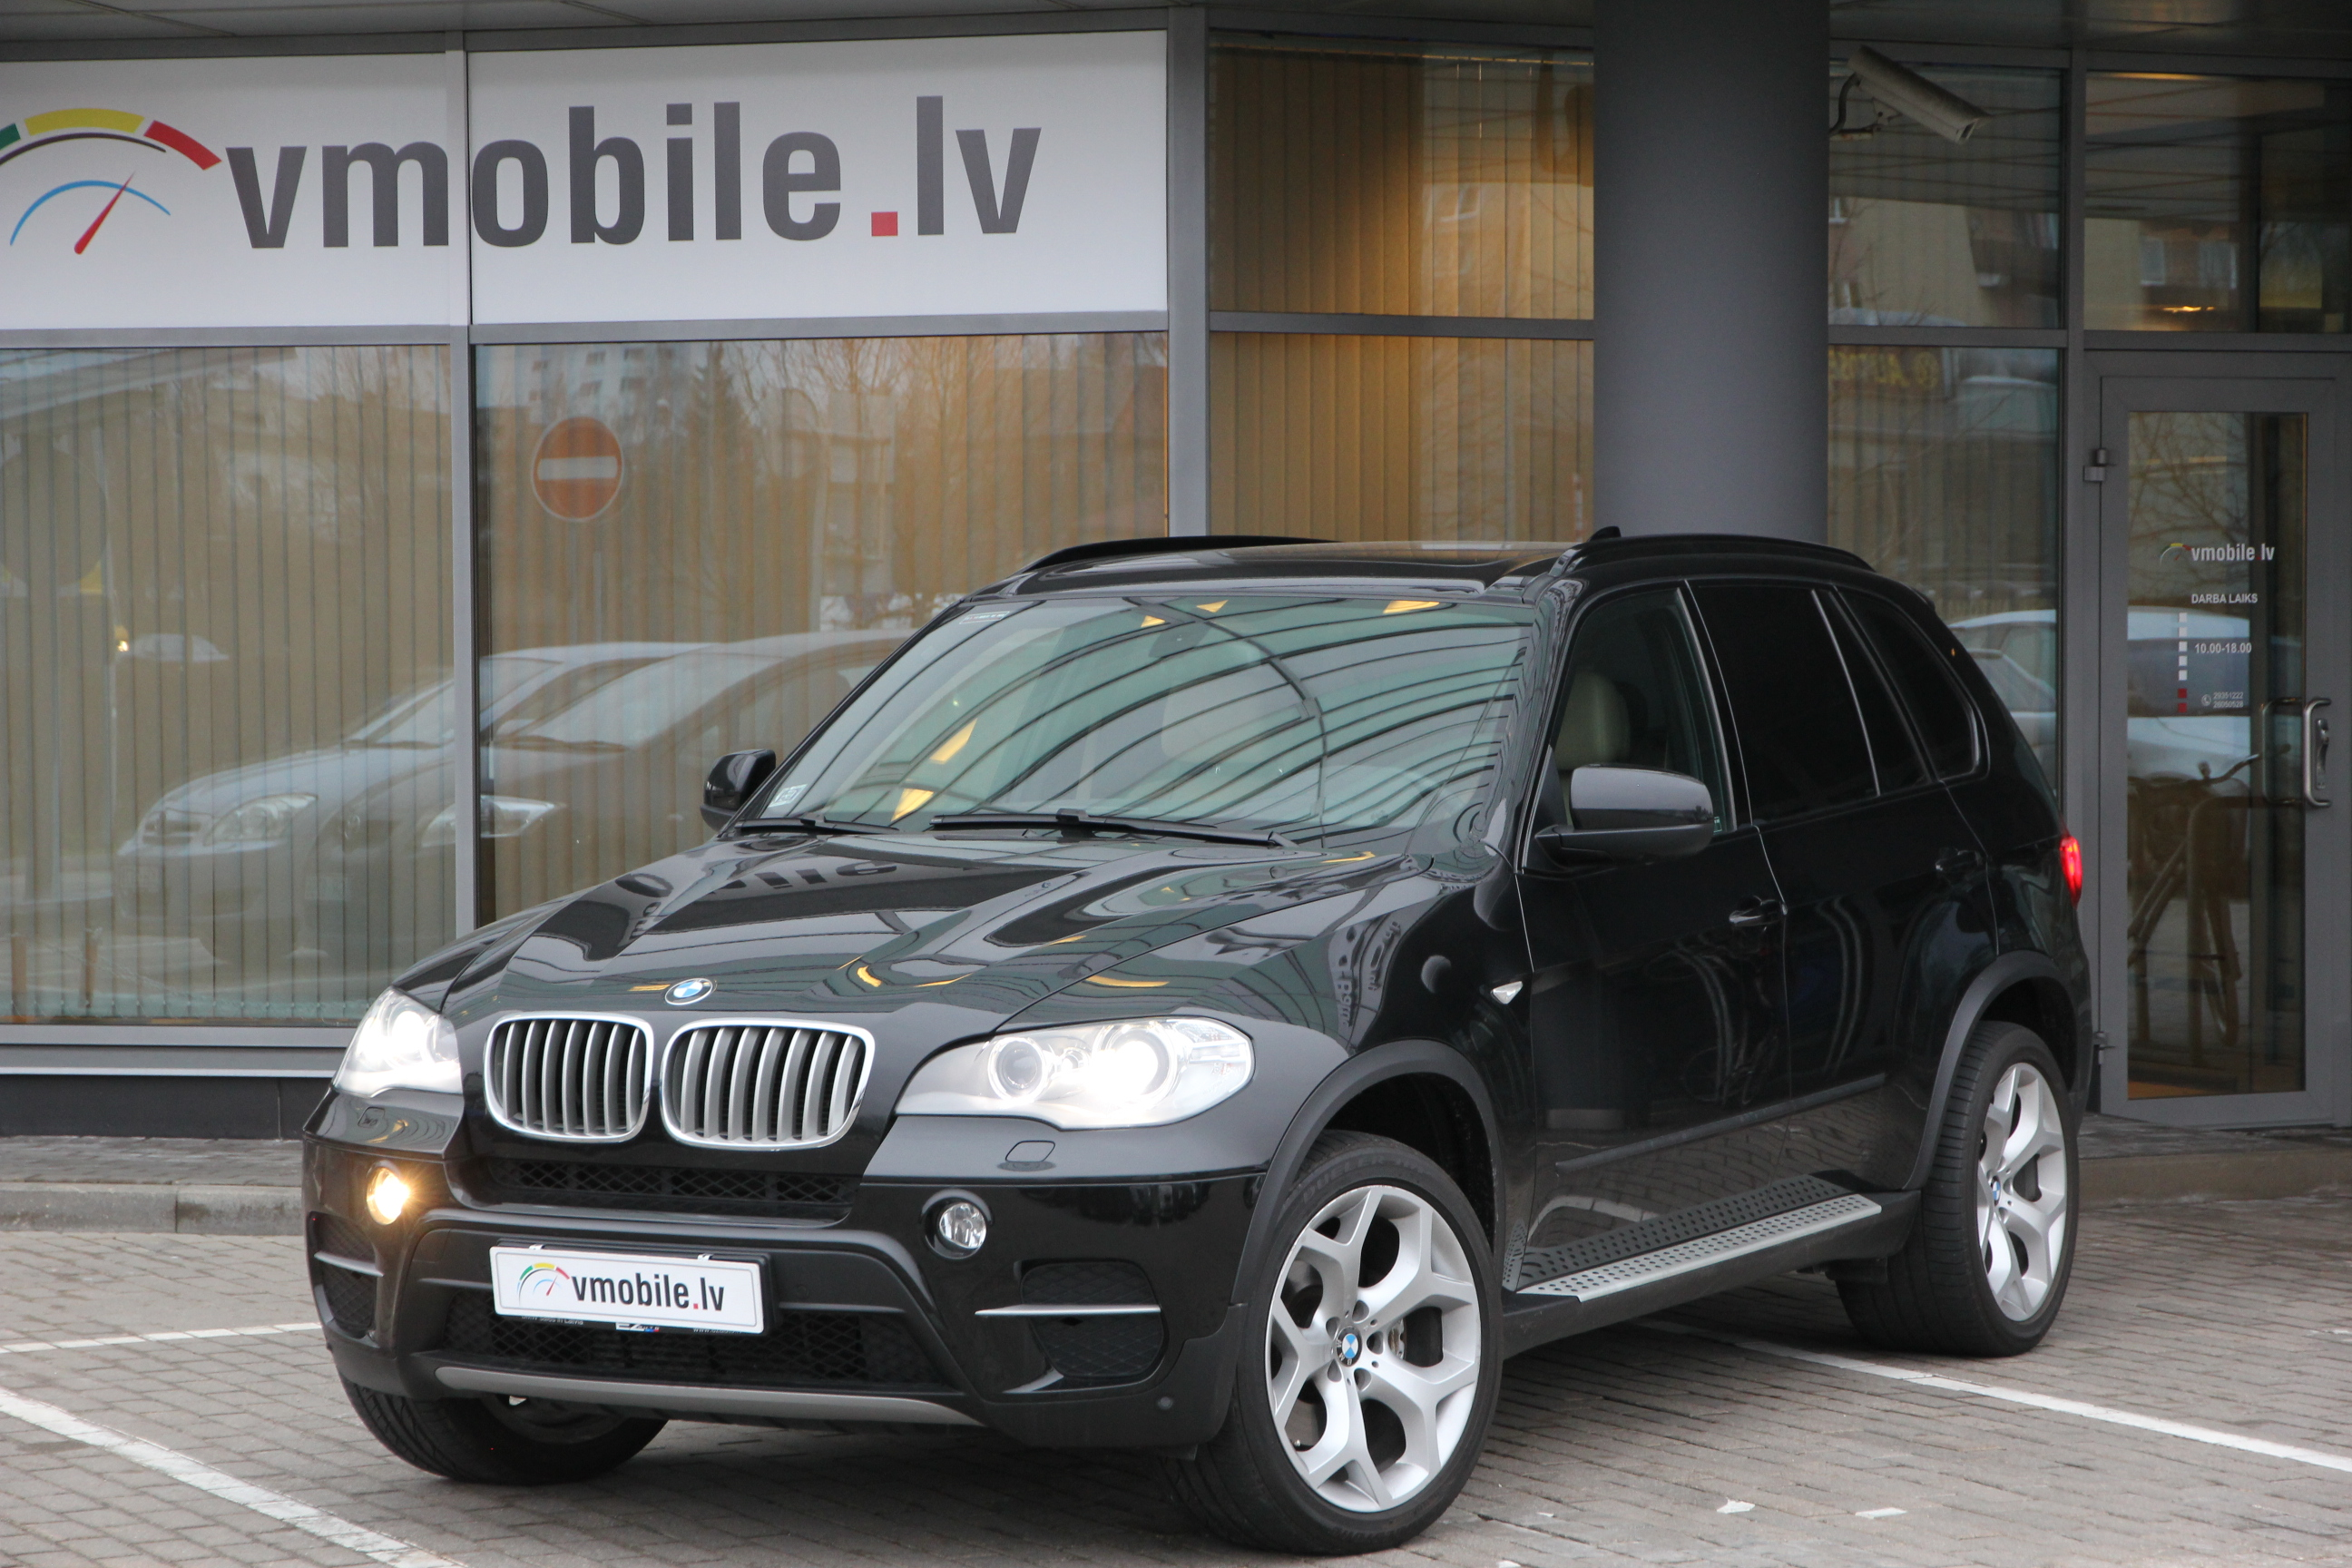 BMW X5 40d INDIVIDUAL 306HP Active Steering Soft Close KEYLESS GO Head Up WEABASTO Panorama Glass Roof